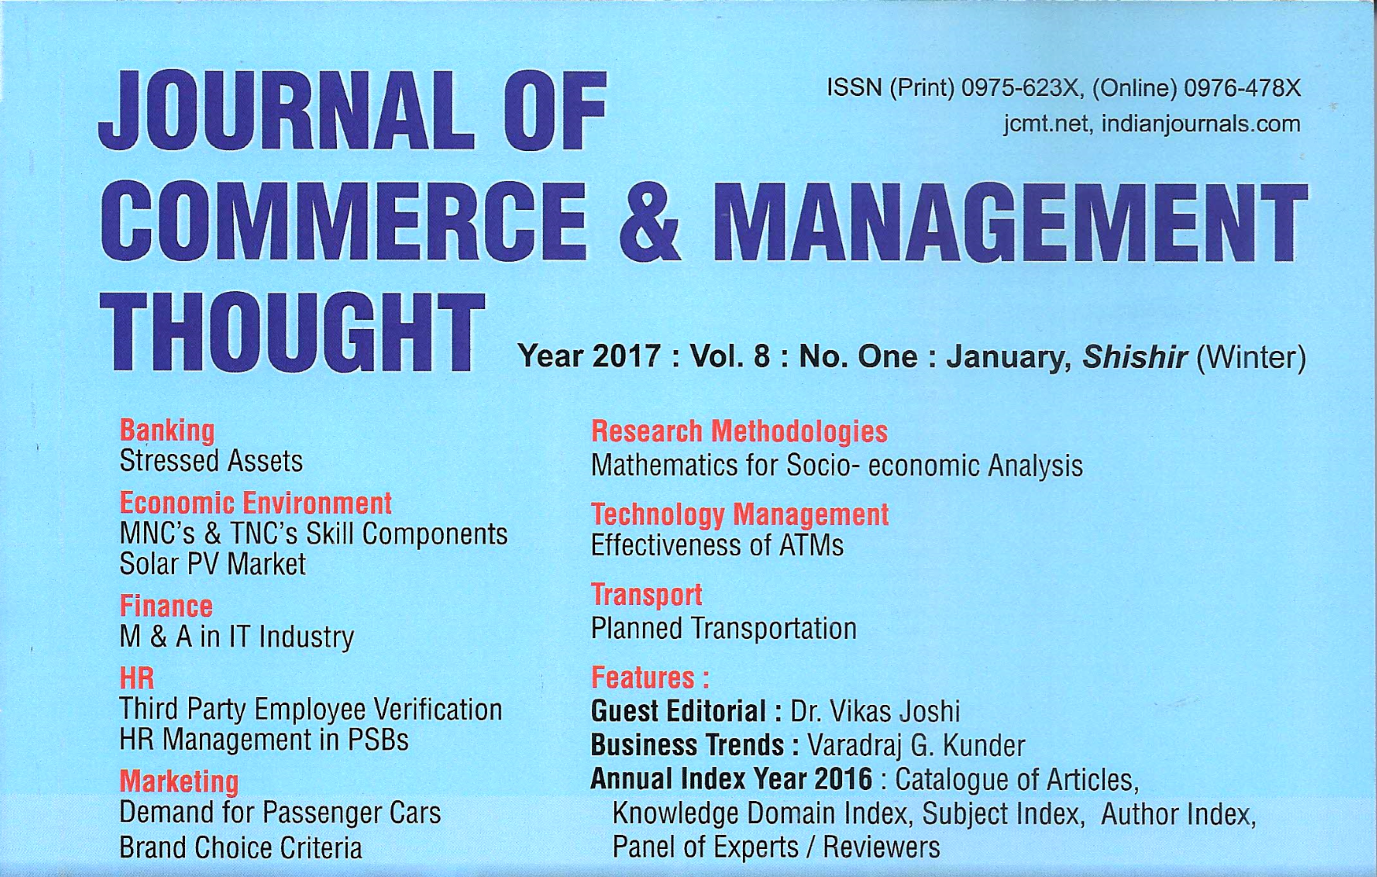 How Entrepreneurs Encounter Opportunities: Management Journal Features Dr. Vikas Joshi's Thoughts